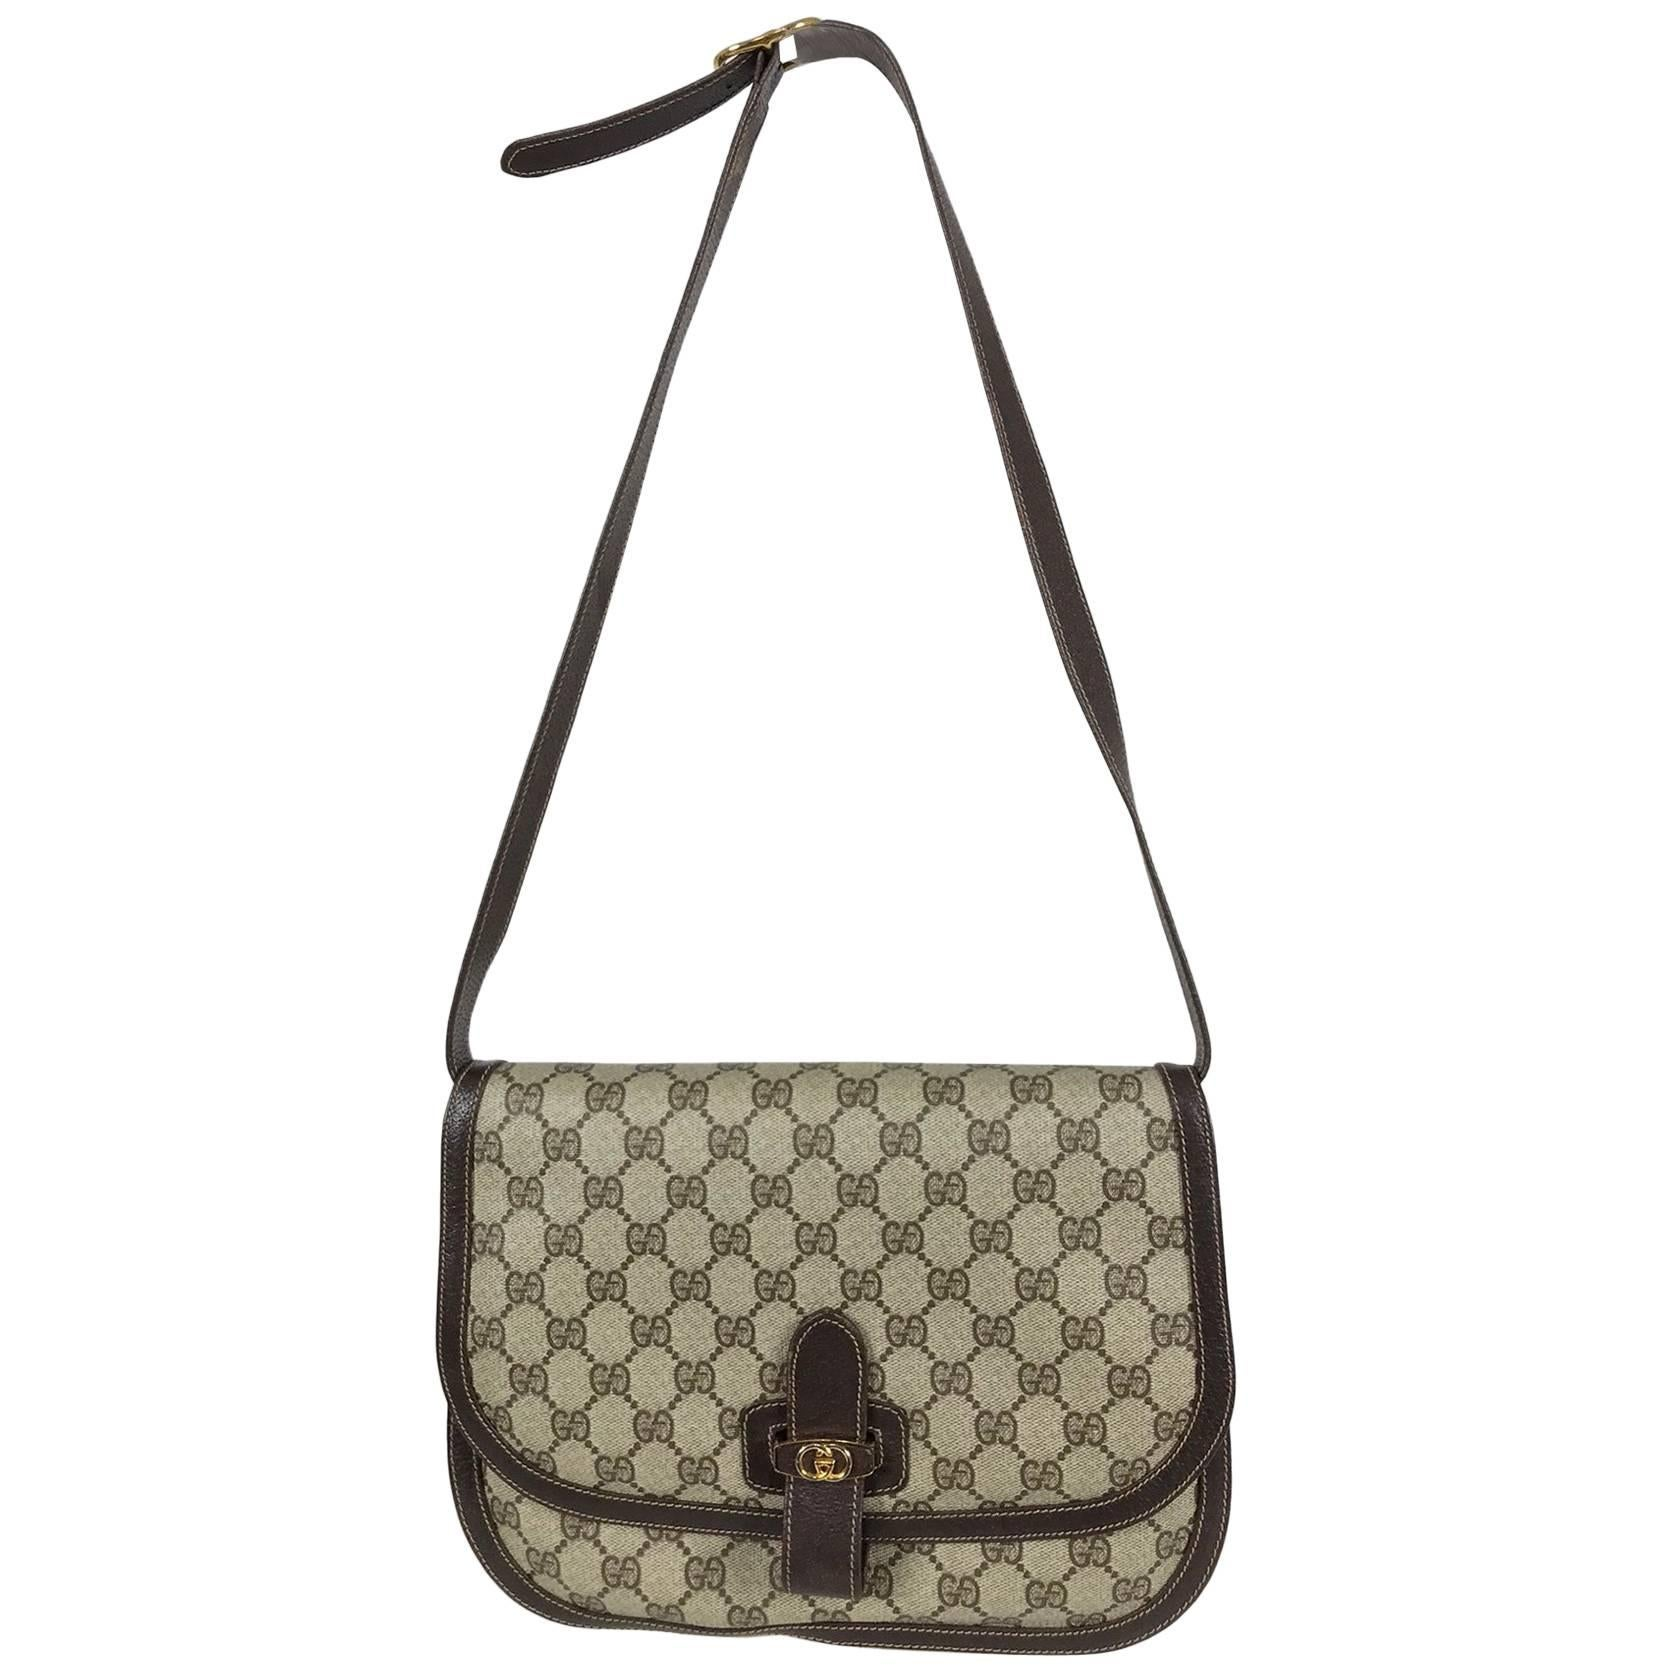 290163cac9cf1a Gucci logo canvas and leather trim flap shoulder bag For Sale at 1stdibs